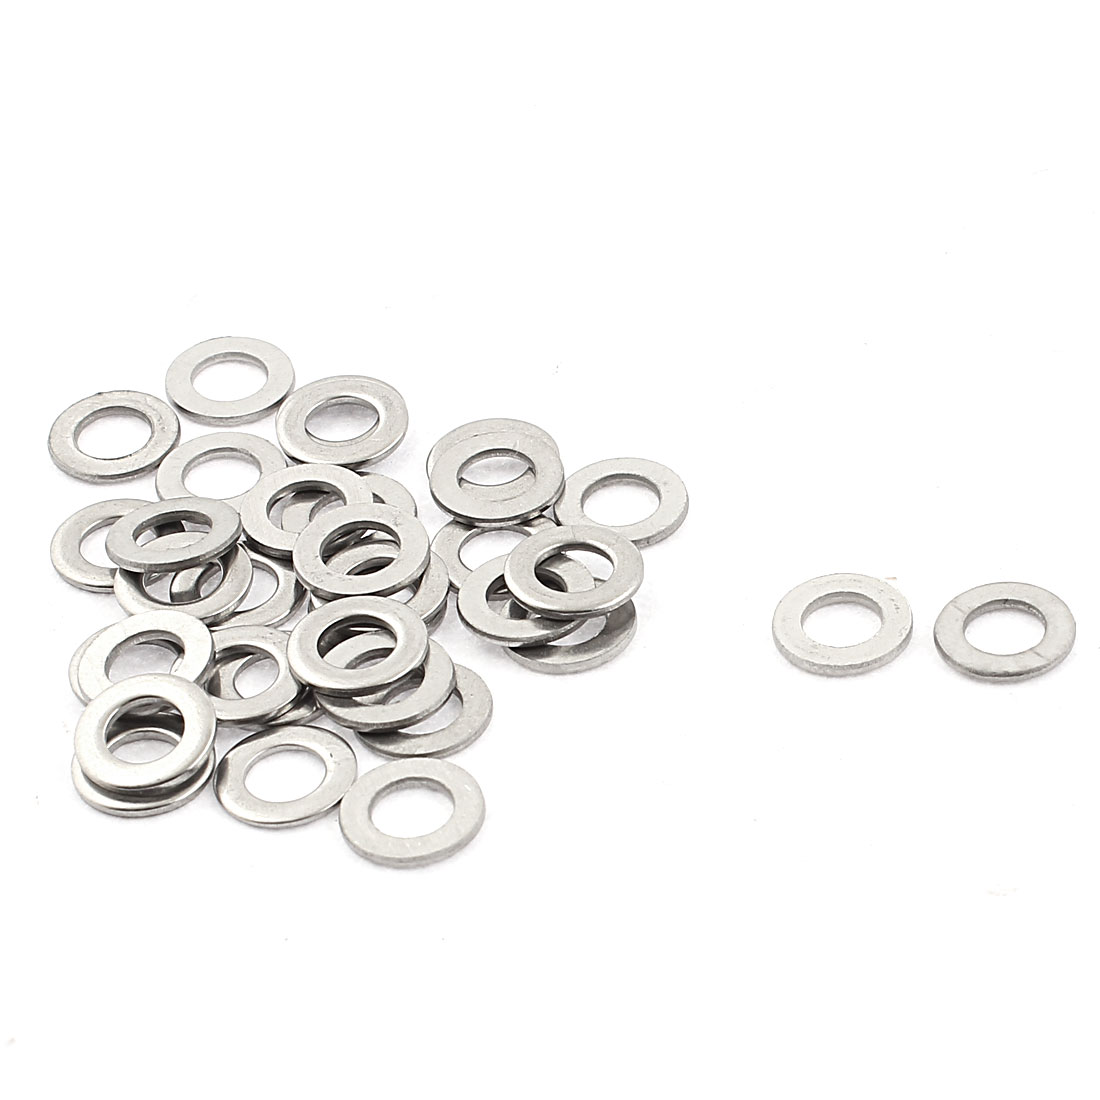 M5 x 10mm x 1mm Stainless Steel Flat Pad Washer Gasket Silver Tone 34pcs